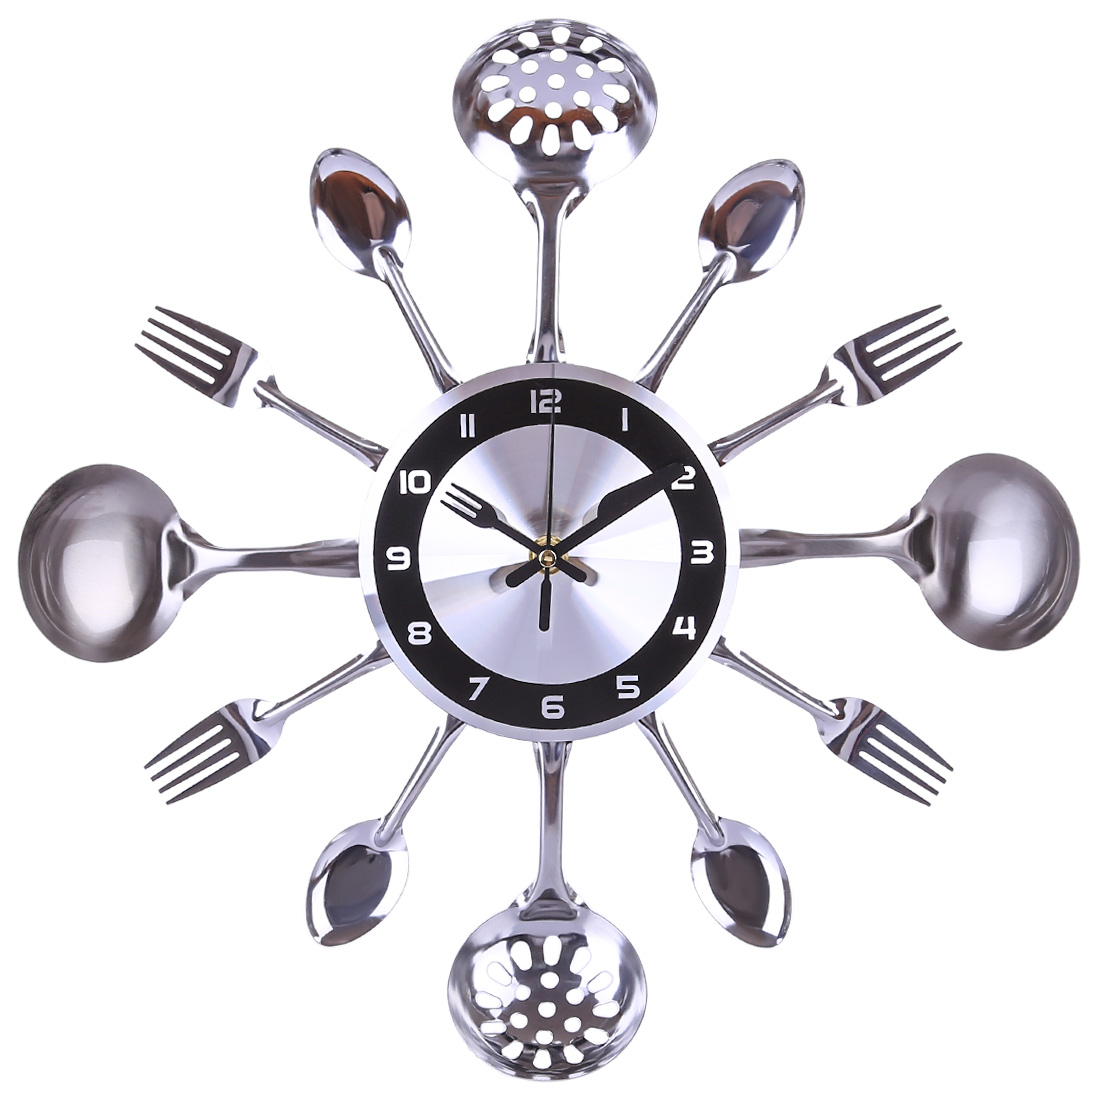 Hot Sale 35cm Stainless Steel Kitchen Spoon Fork Clock Silent Wall Clock Modern Design For Home Living Room Decoration - Silver